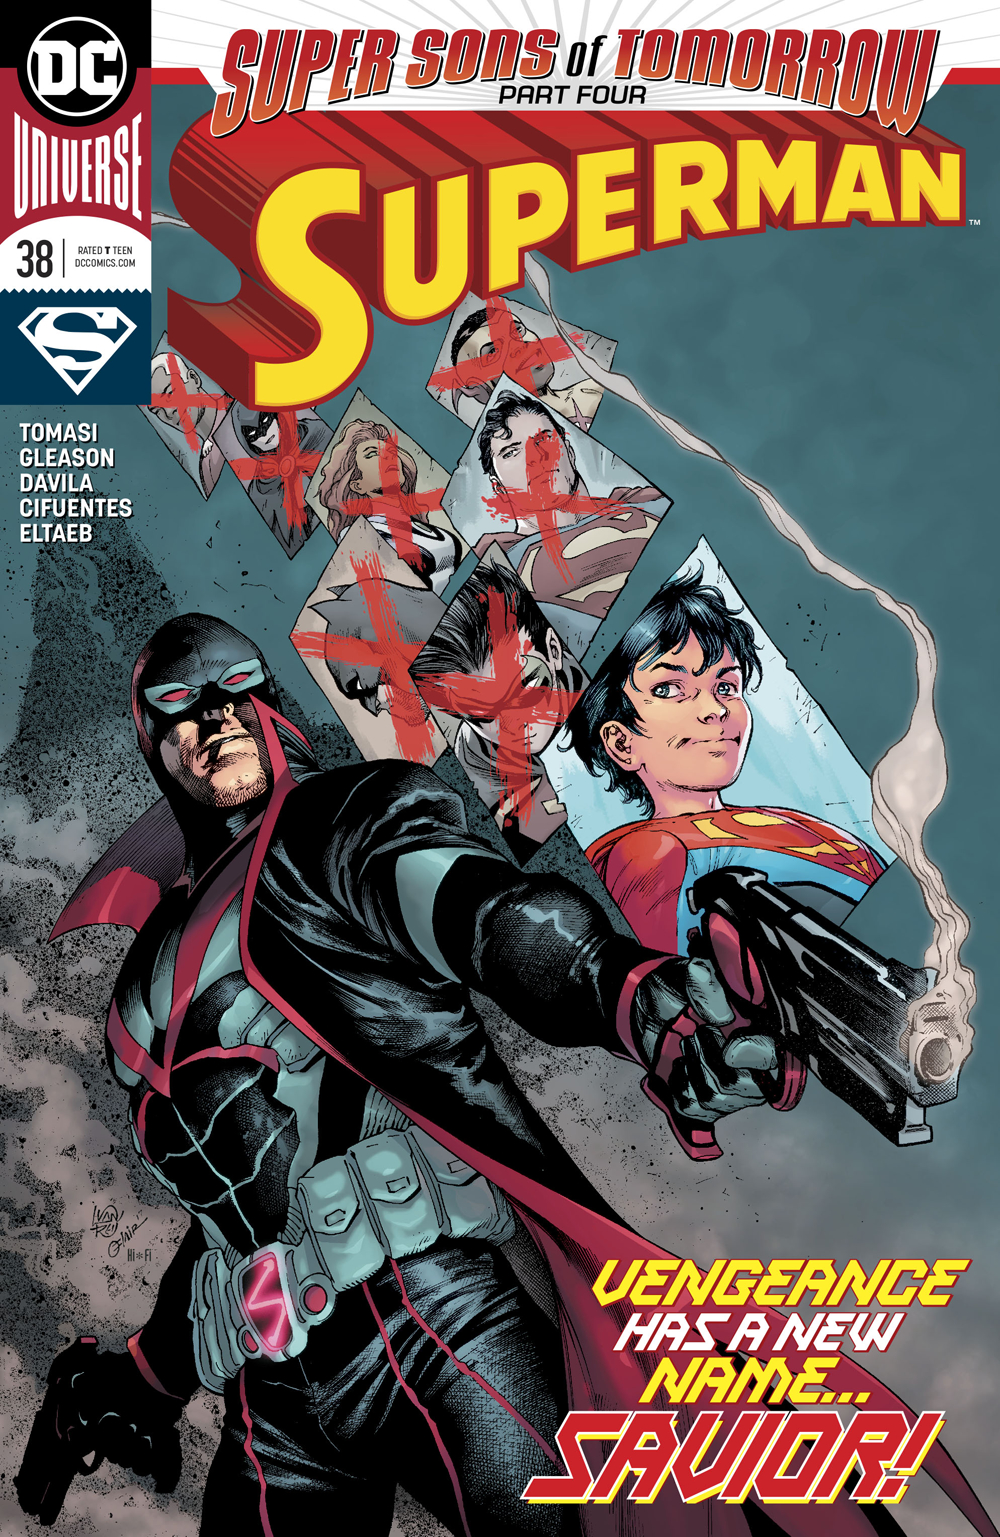 SUPERMAN #38 SONS OF TOMORROW